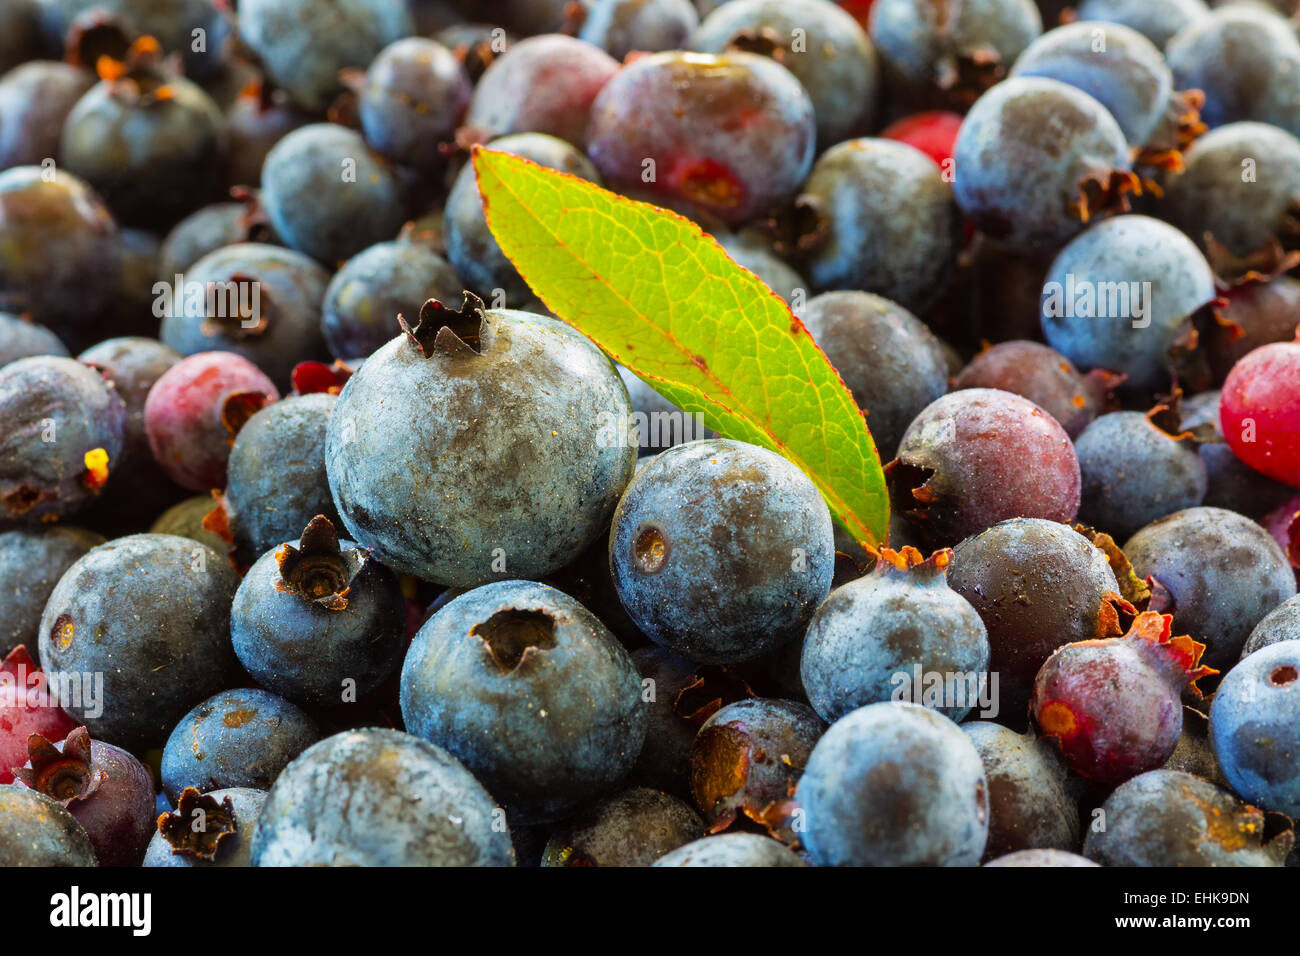 Freshly picked wild low bush blueberries - Stock Image